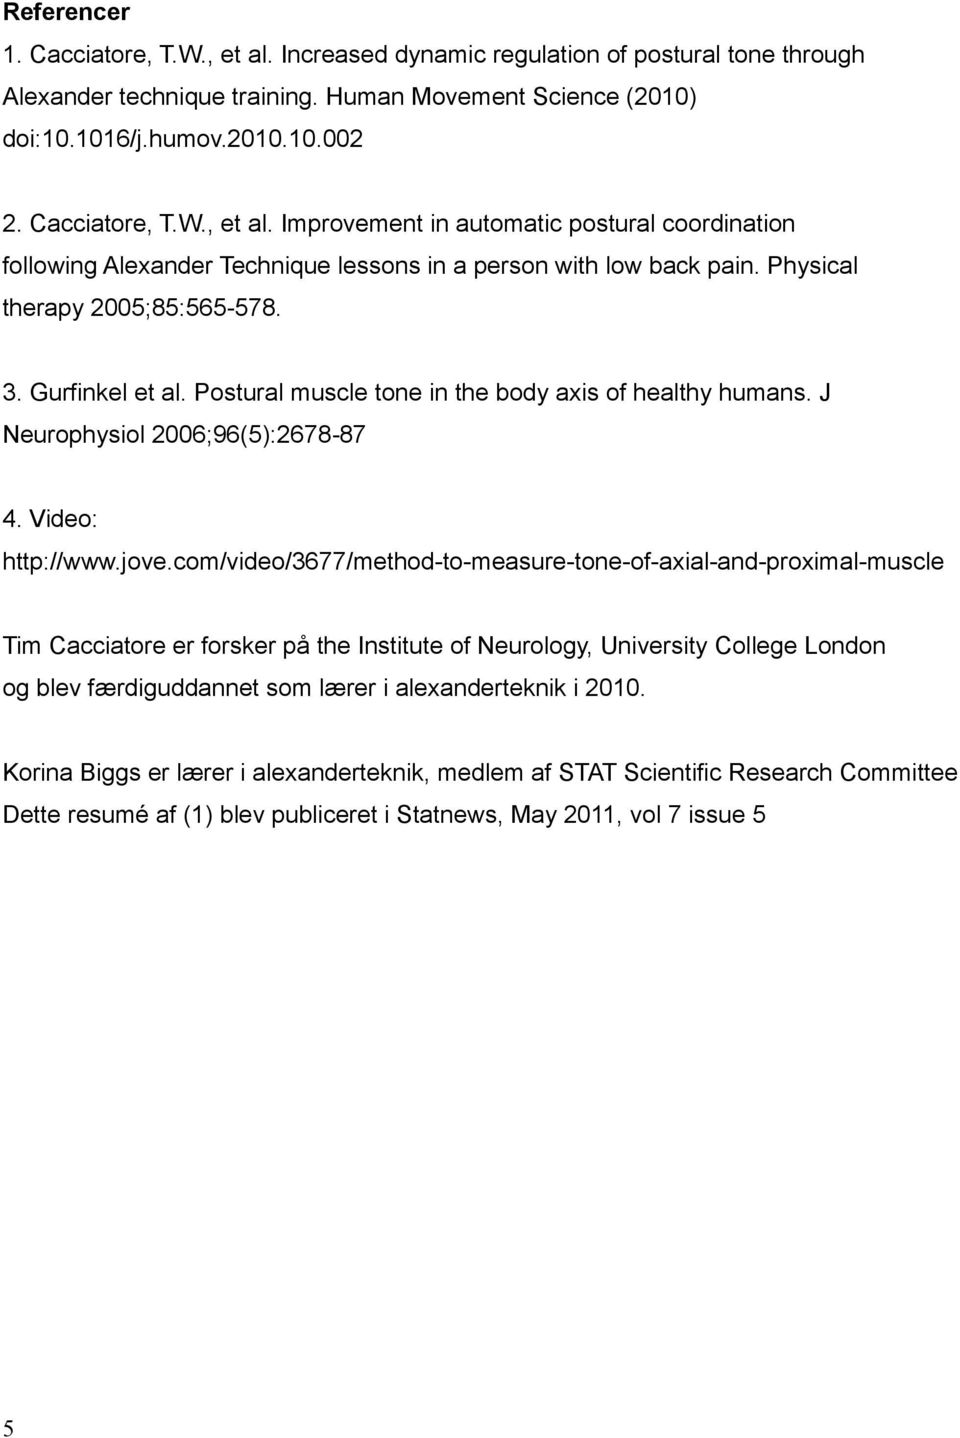 Postural muscle tone in the body axis of healthy humans. J Neurophysiol 2006;96(5):2678 87 4. Video: http://www.jove.